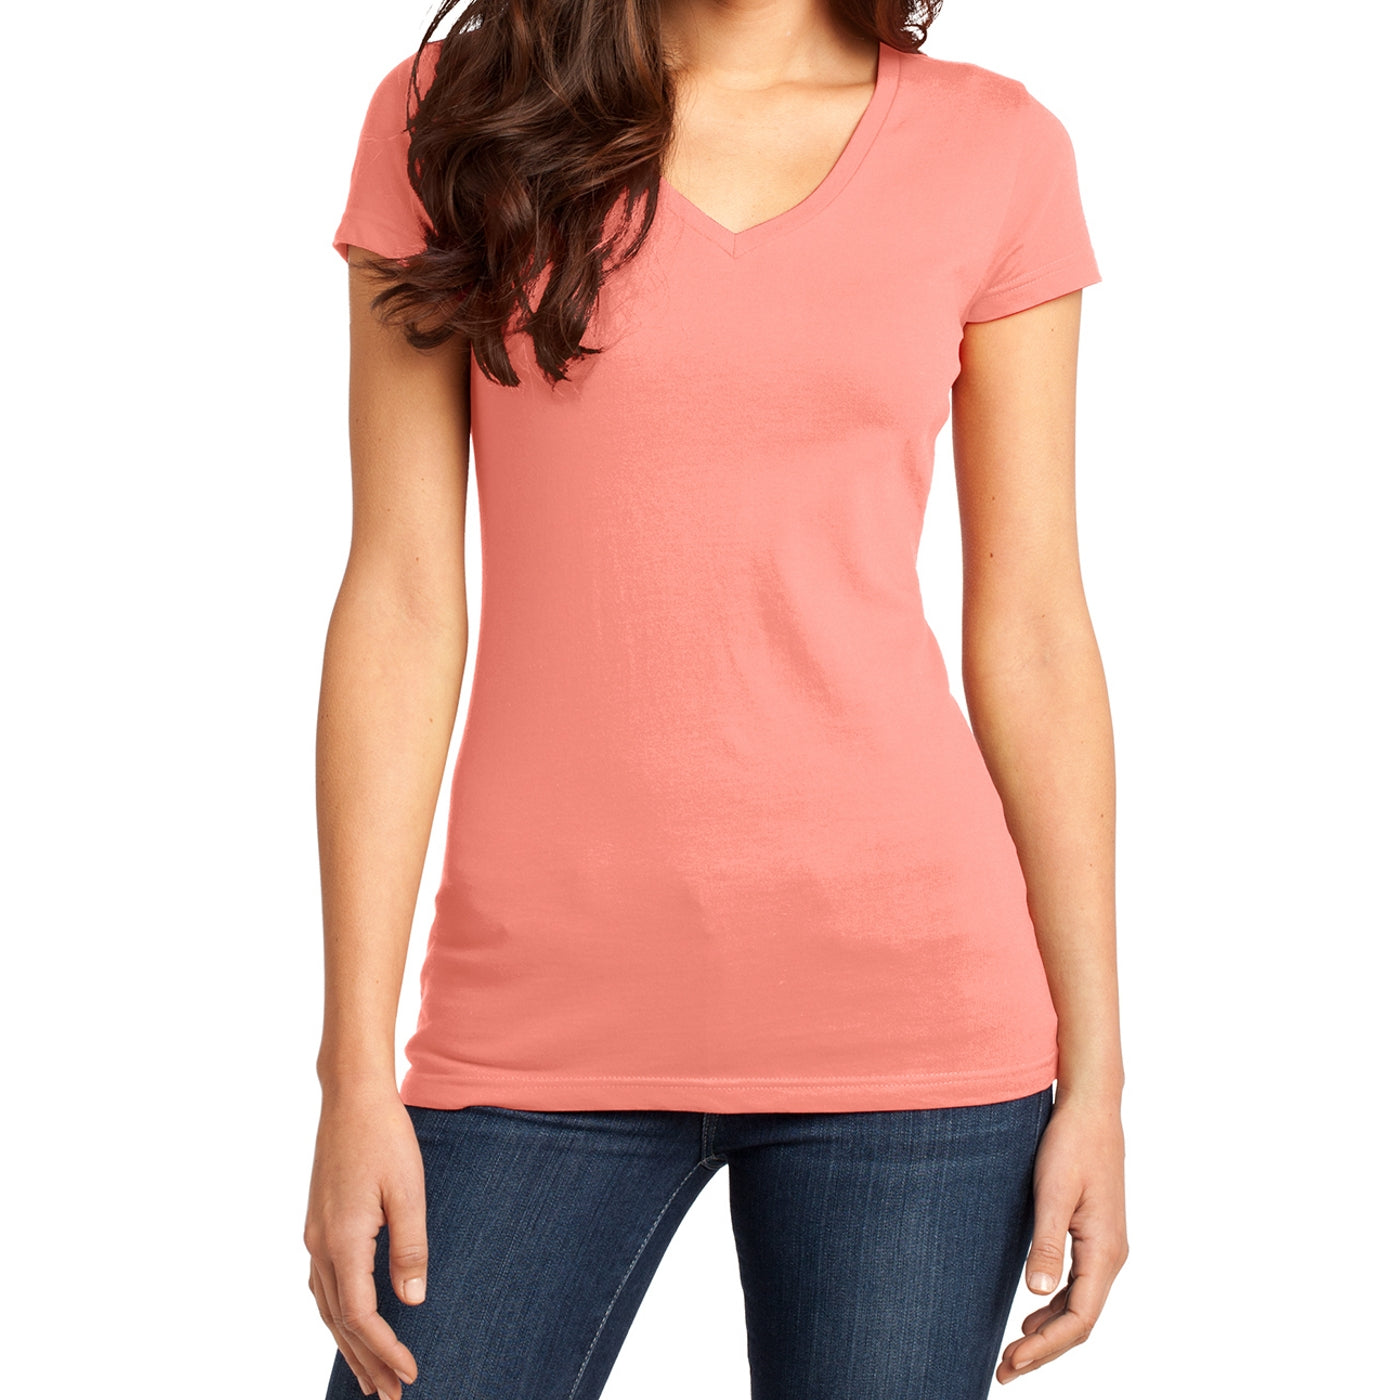 Women's Juniors Very Important Tee V-Neck - Peach